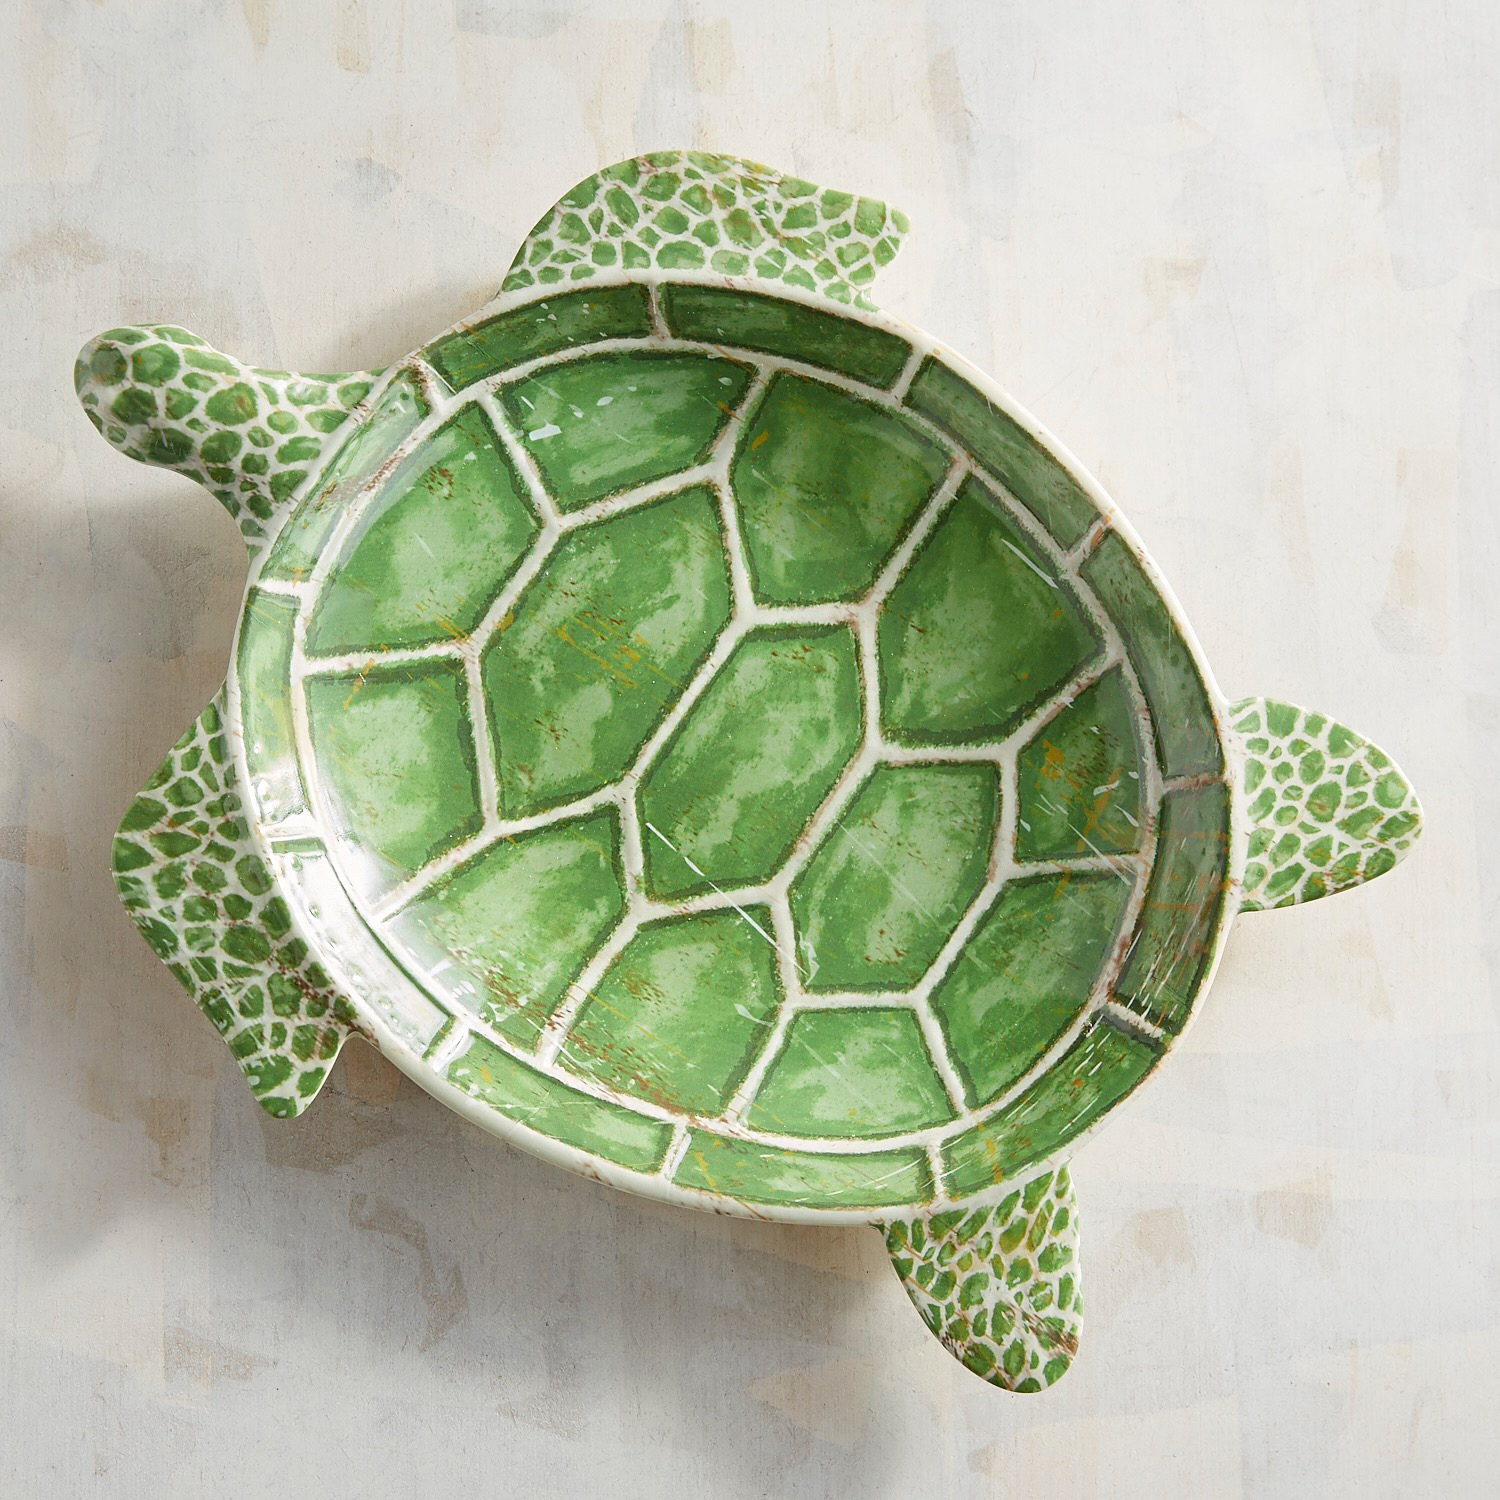 Speedy the Turtle Melamine Salad Plate